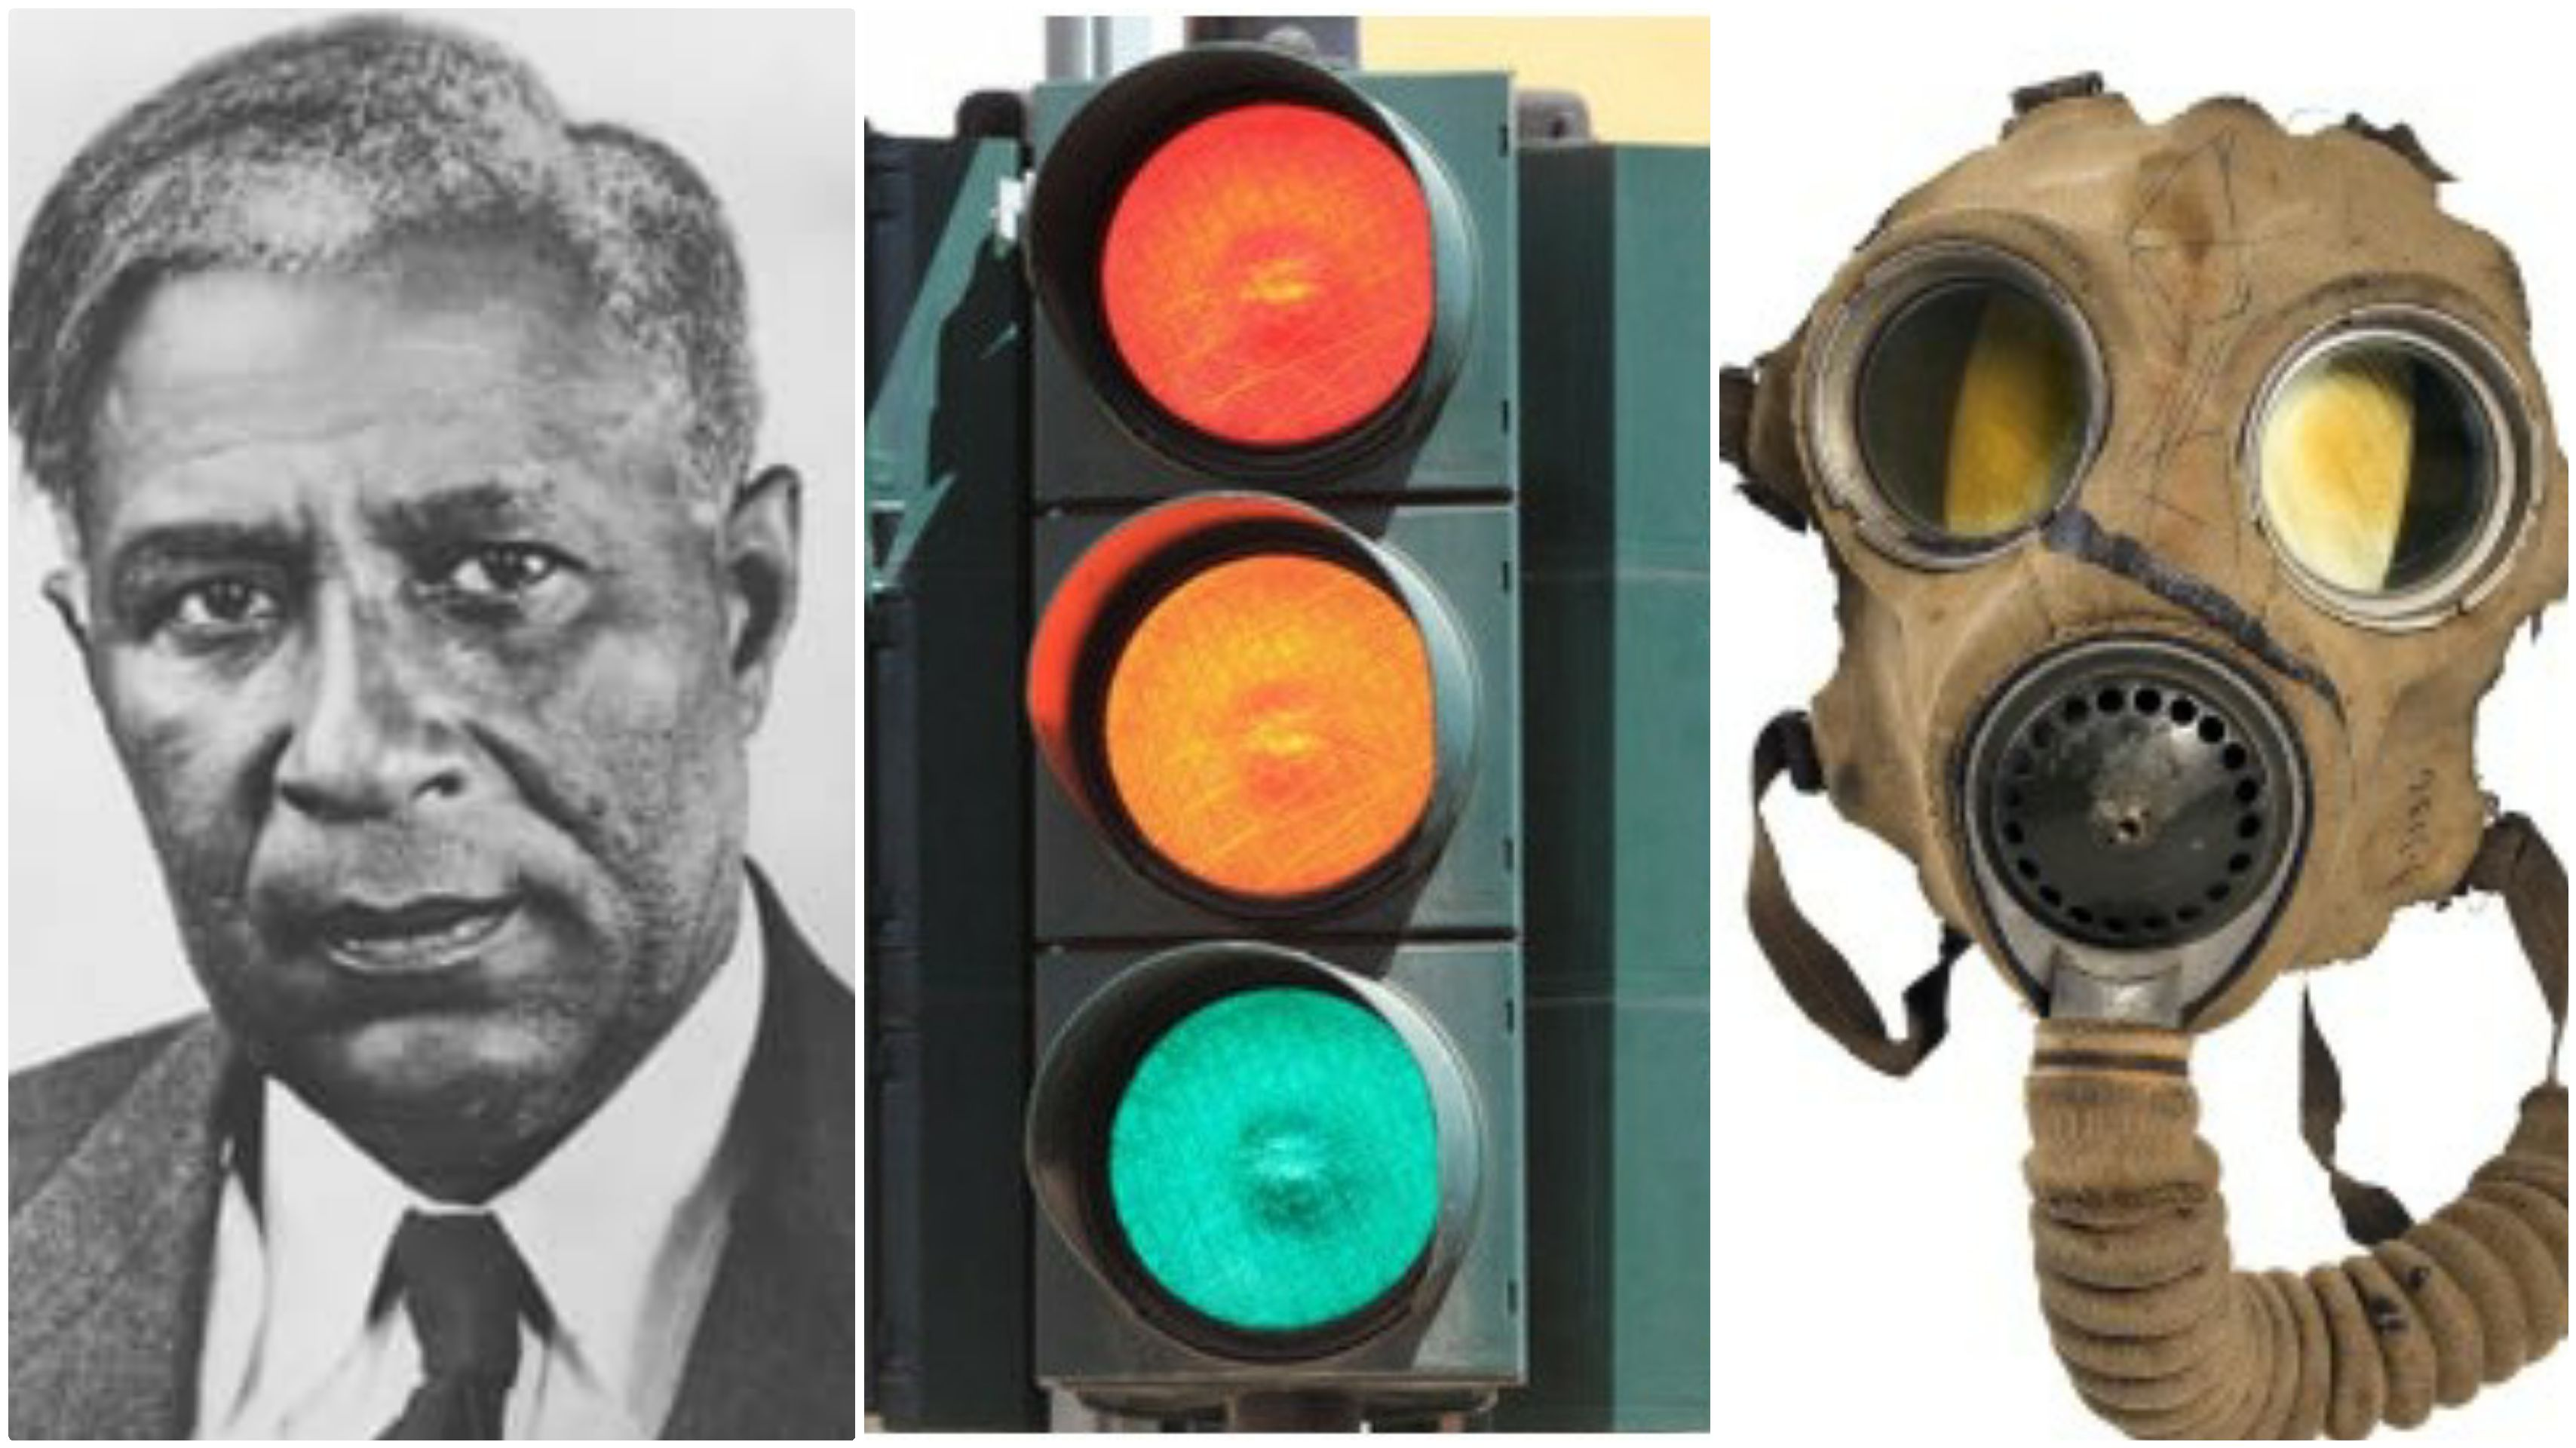 Meet The Black Man Who Invented the Traffic Light and The Gas Mask | African american inventors, Gas mask, Traffic light